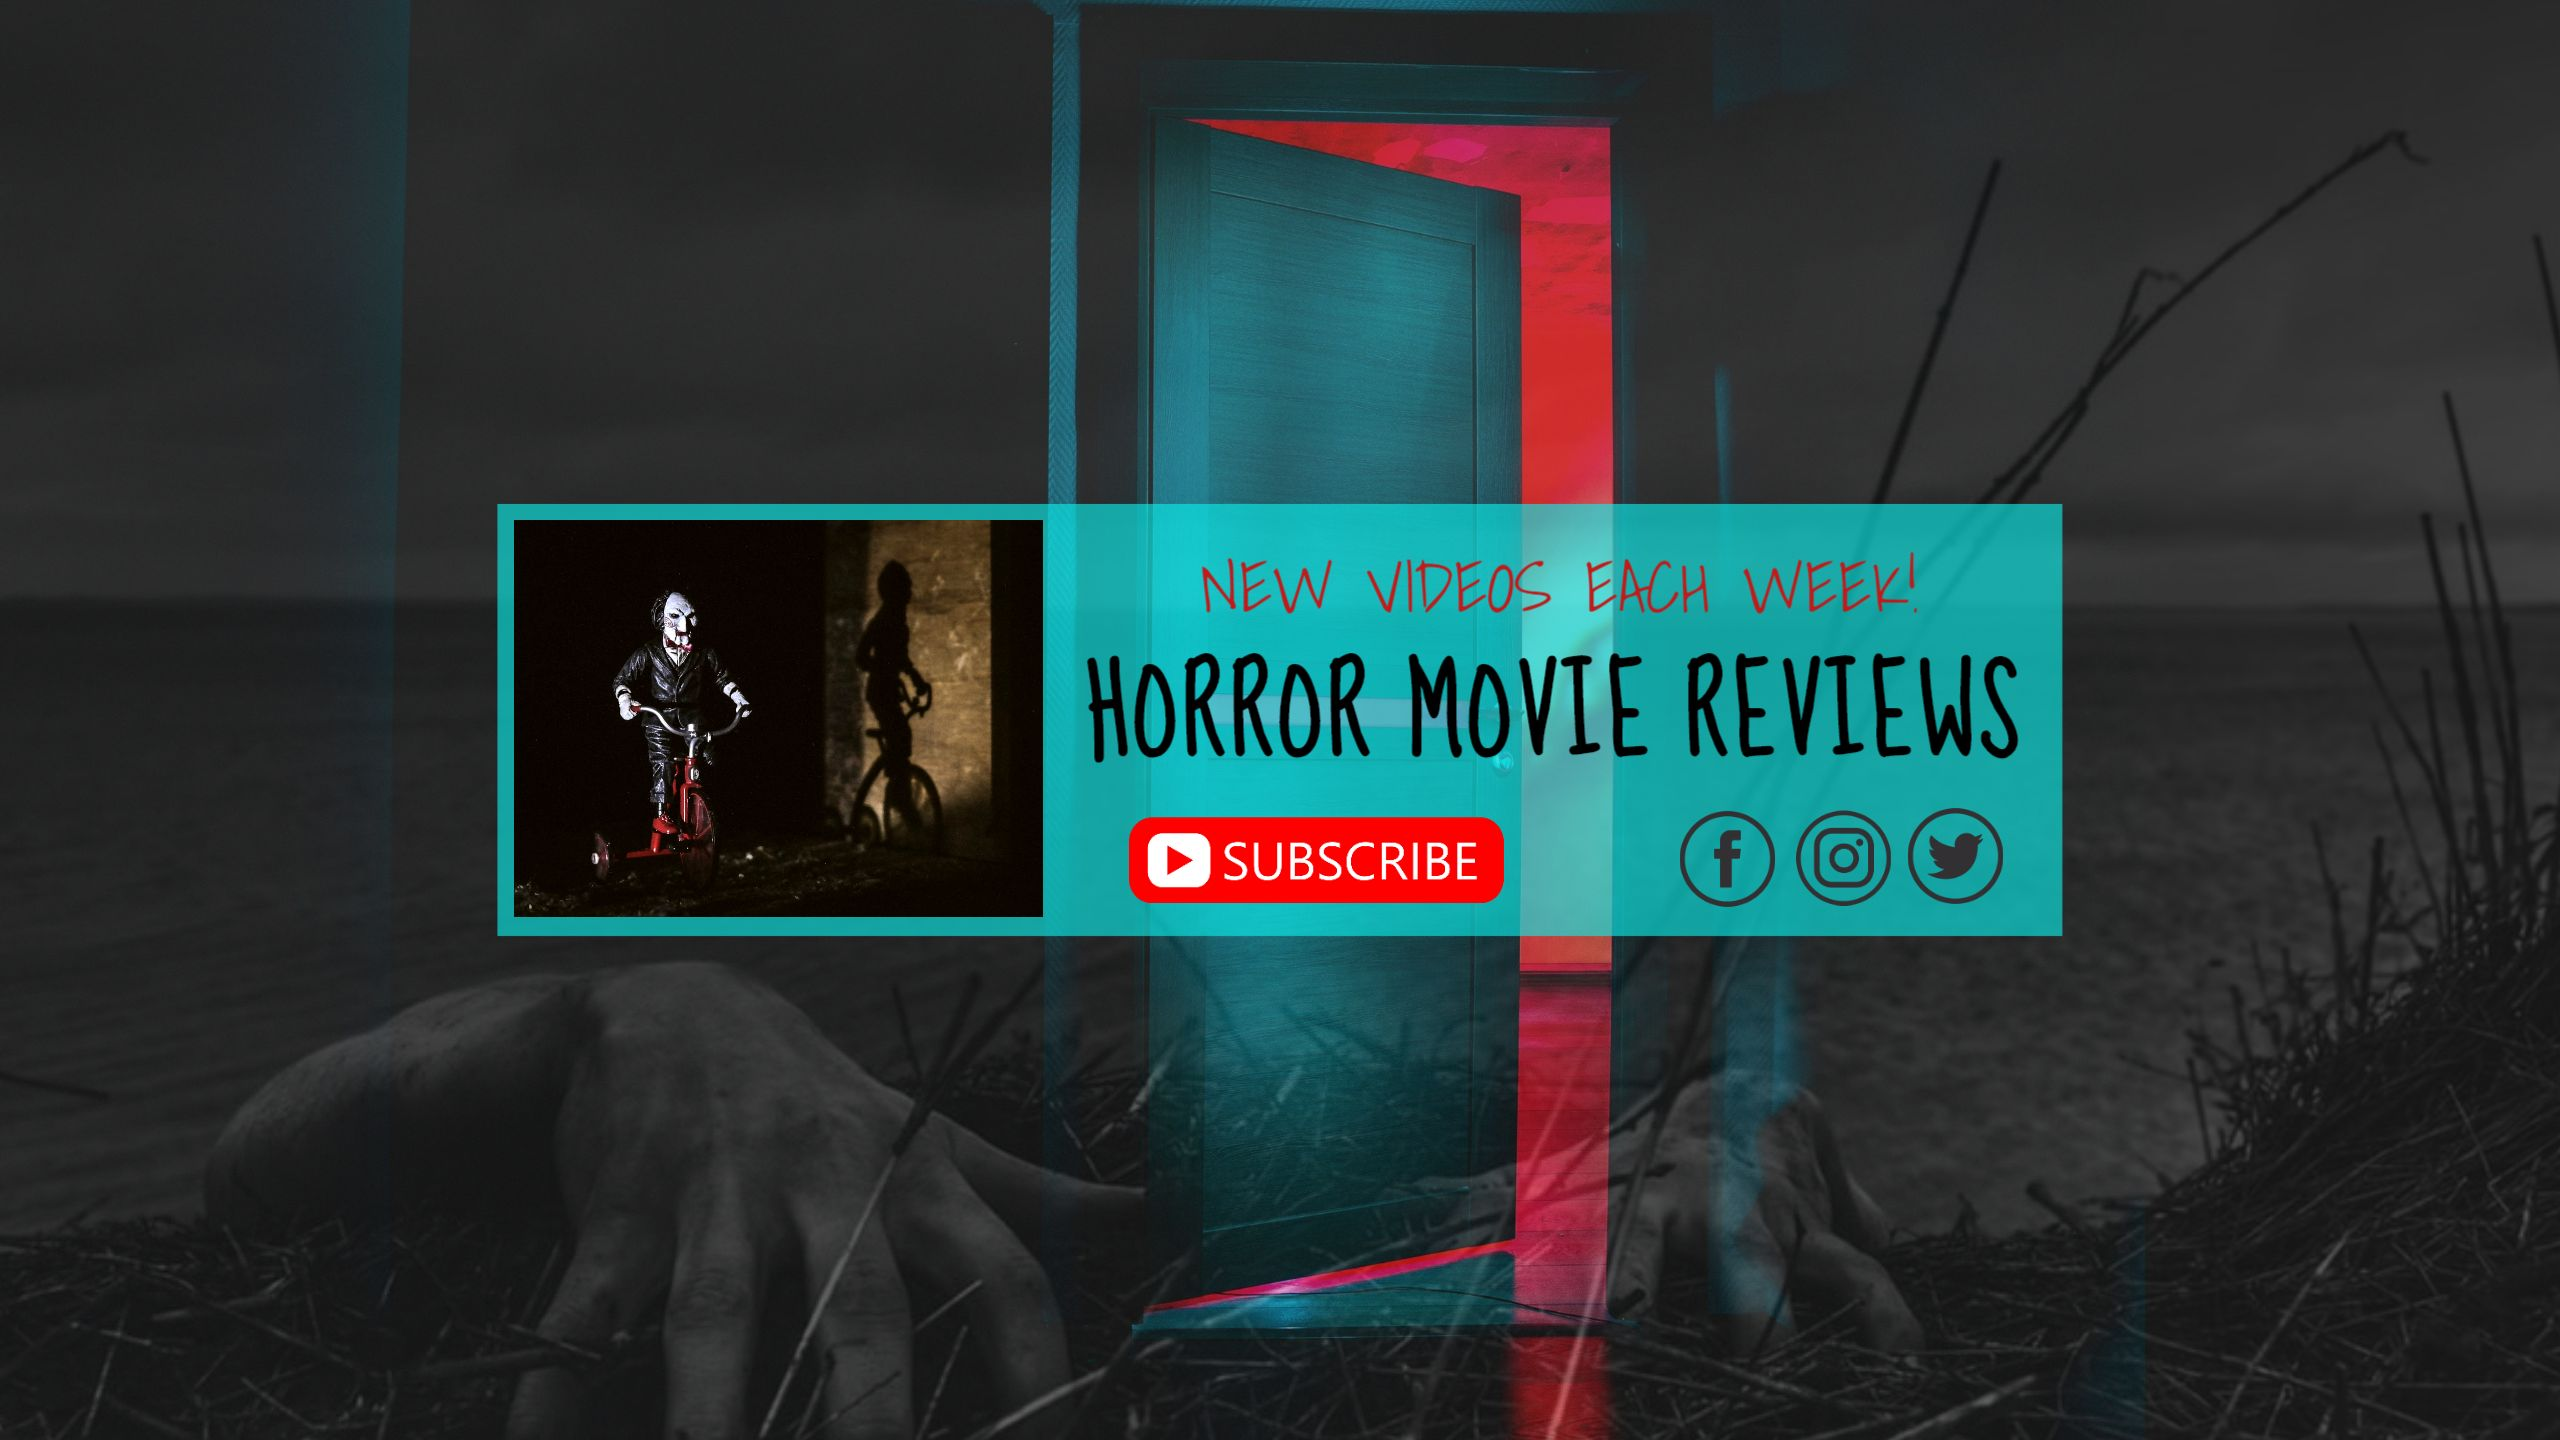 Movie Review YouTube Channel Art